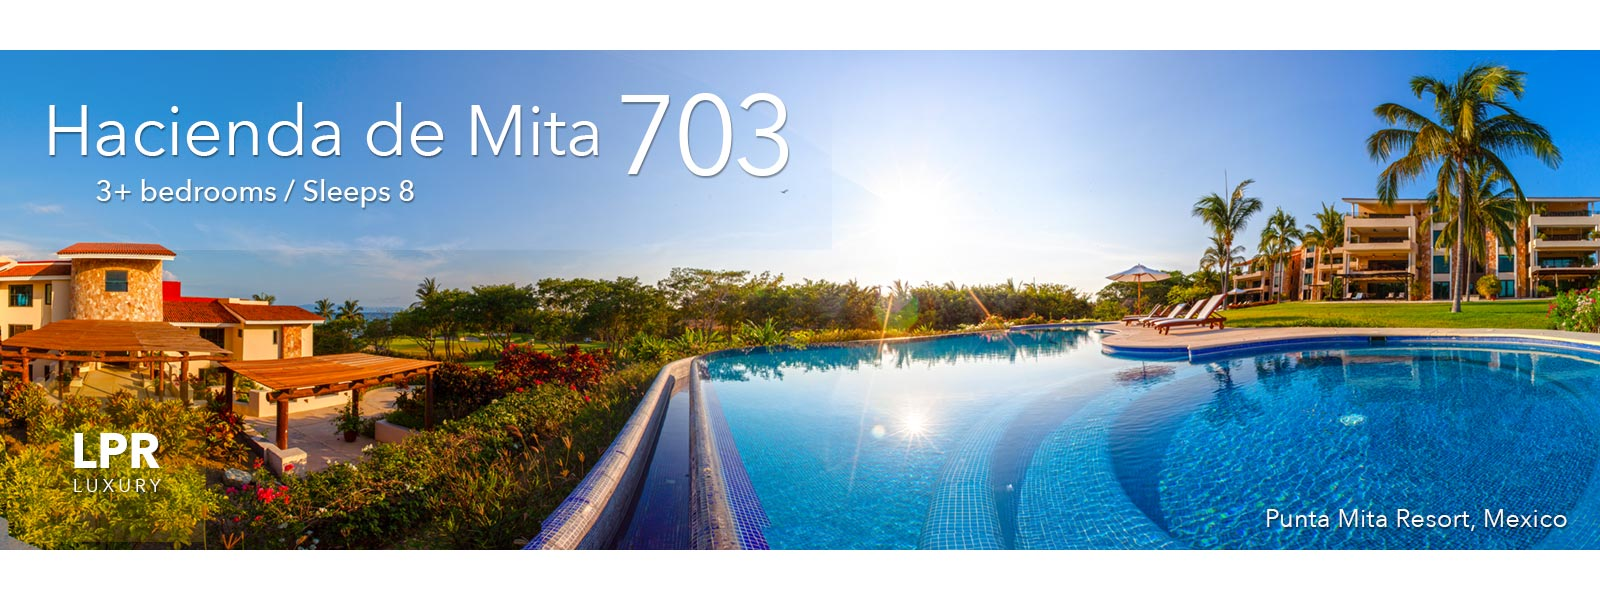 Hacienda de Mita 703 - Luxury Punta Mita Mexico condos for sale and rent